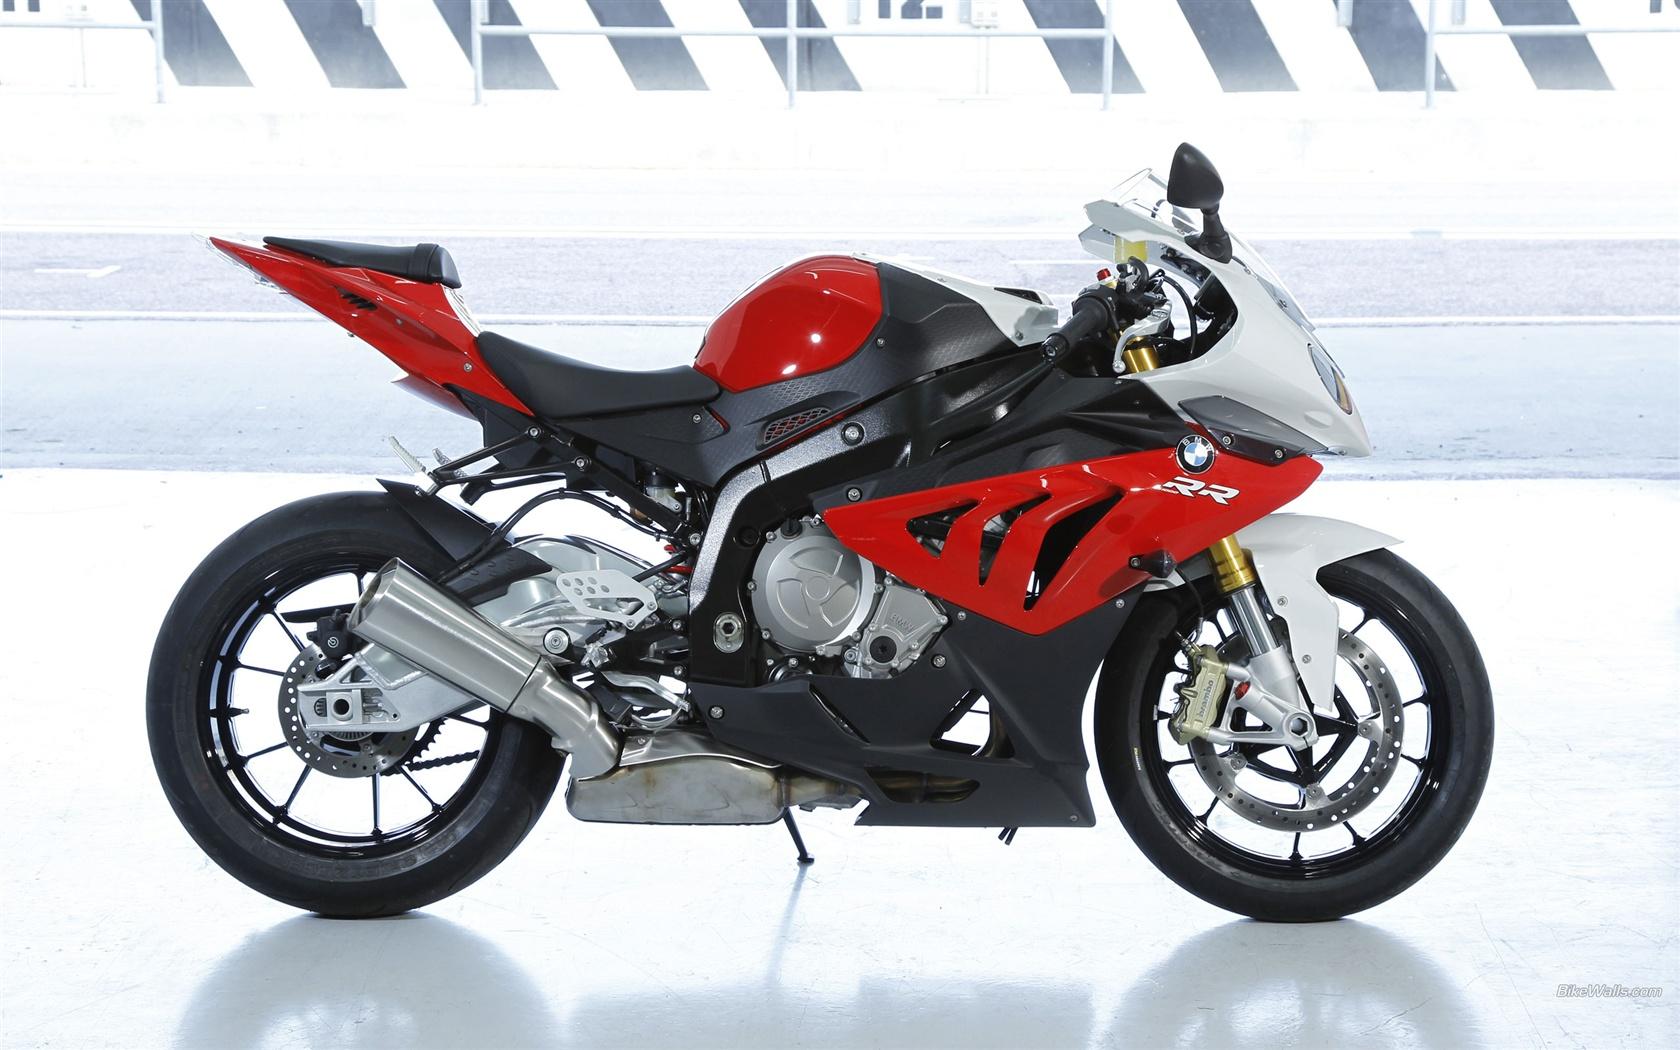 Bmw S 1000 Rr Motorcycle 2012 Wallpaper 1680x1050